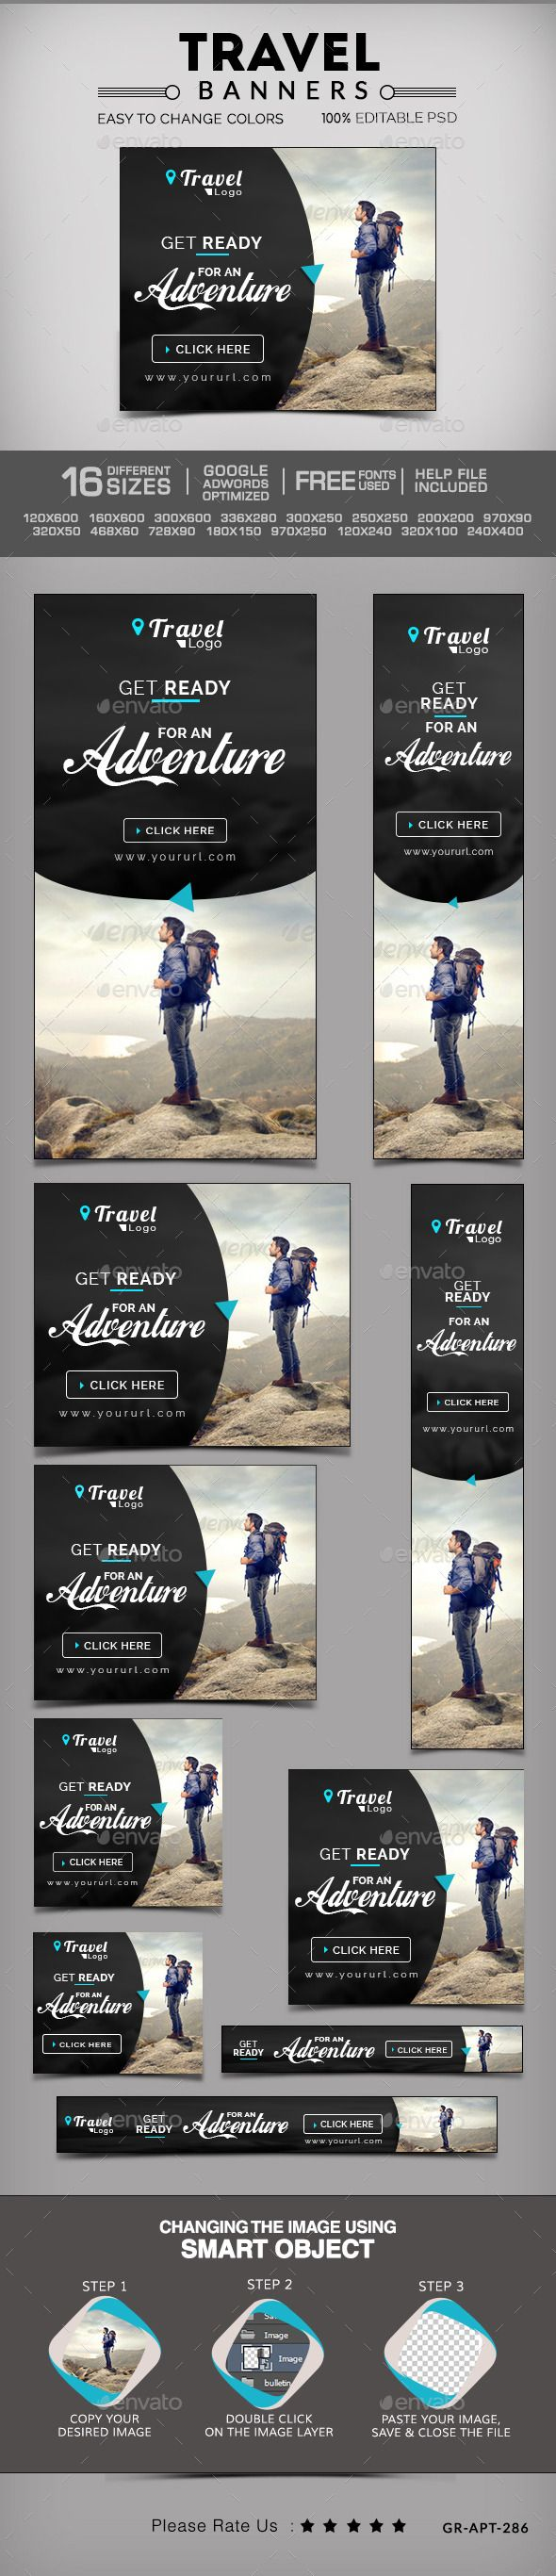 Travel & Tourism Web Banners Template PSD | #travelbanners #tourismbanners #webbanners | Buy and Download: http://graphicriver.net/item/travel-tourism-web-banners/10023989?ref=ksioks